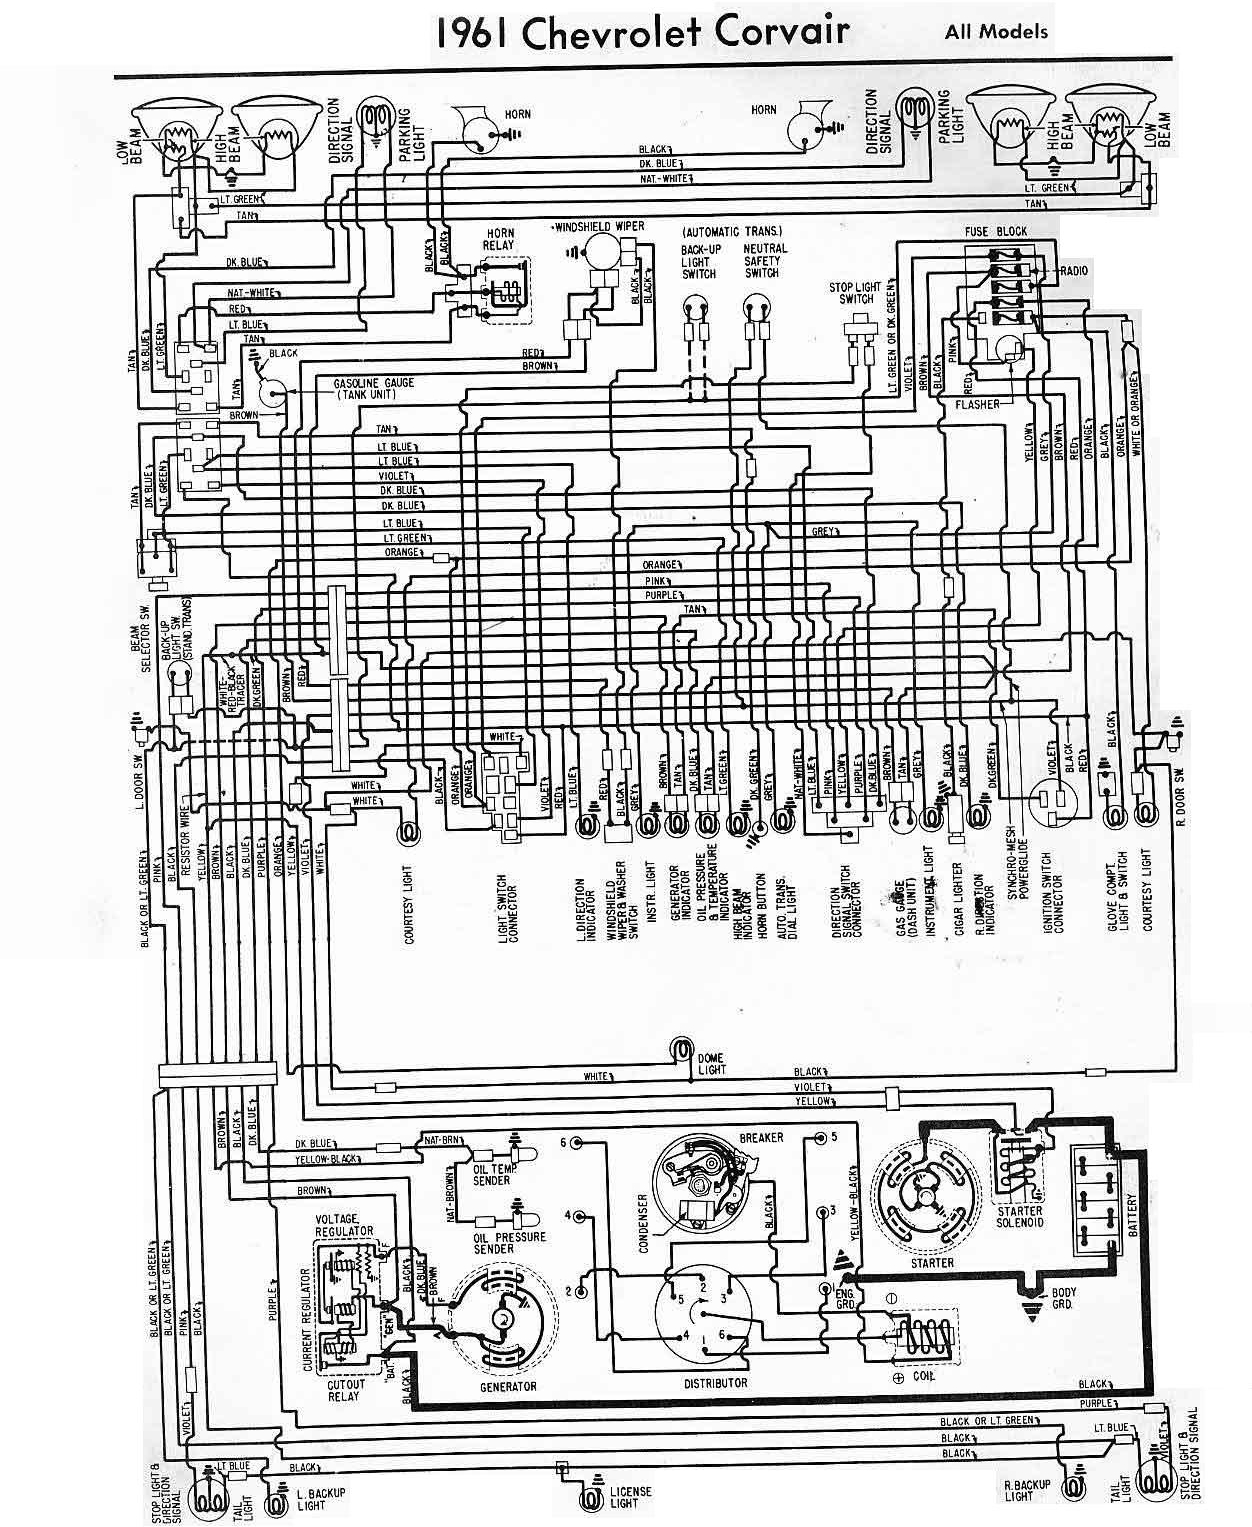 1961 chevy wiring diagram 1961 chrysler wiring diagram